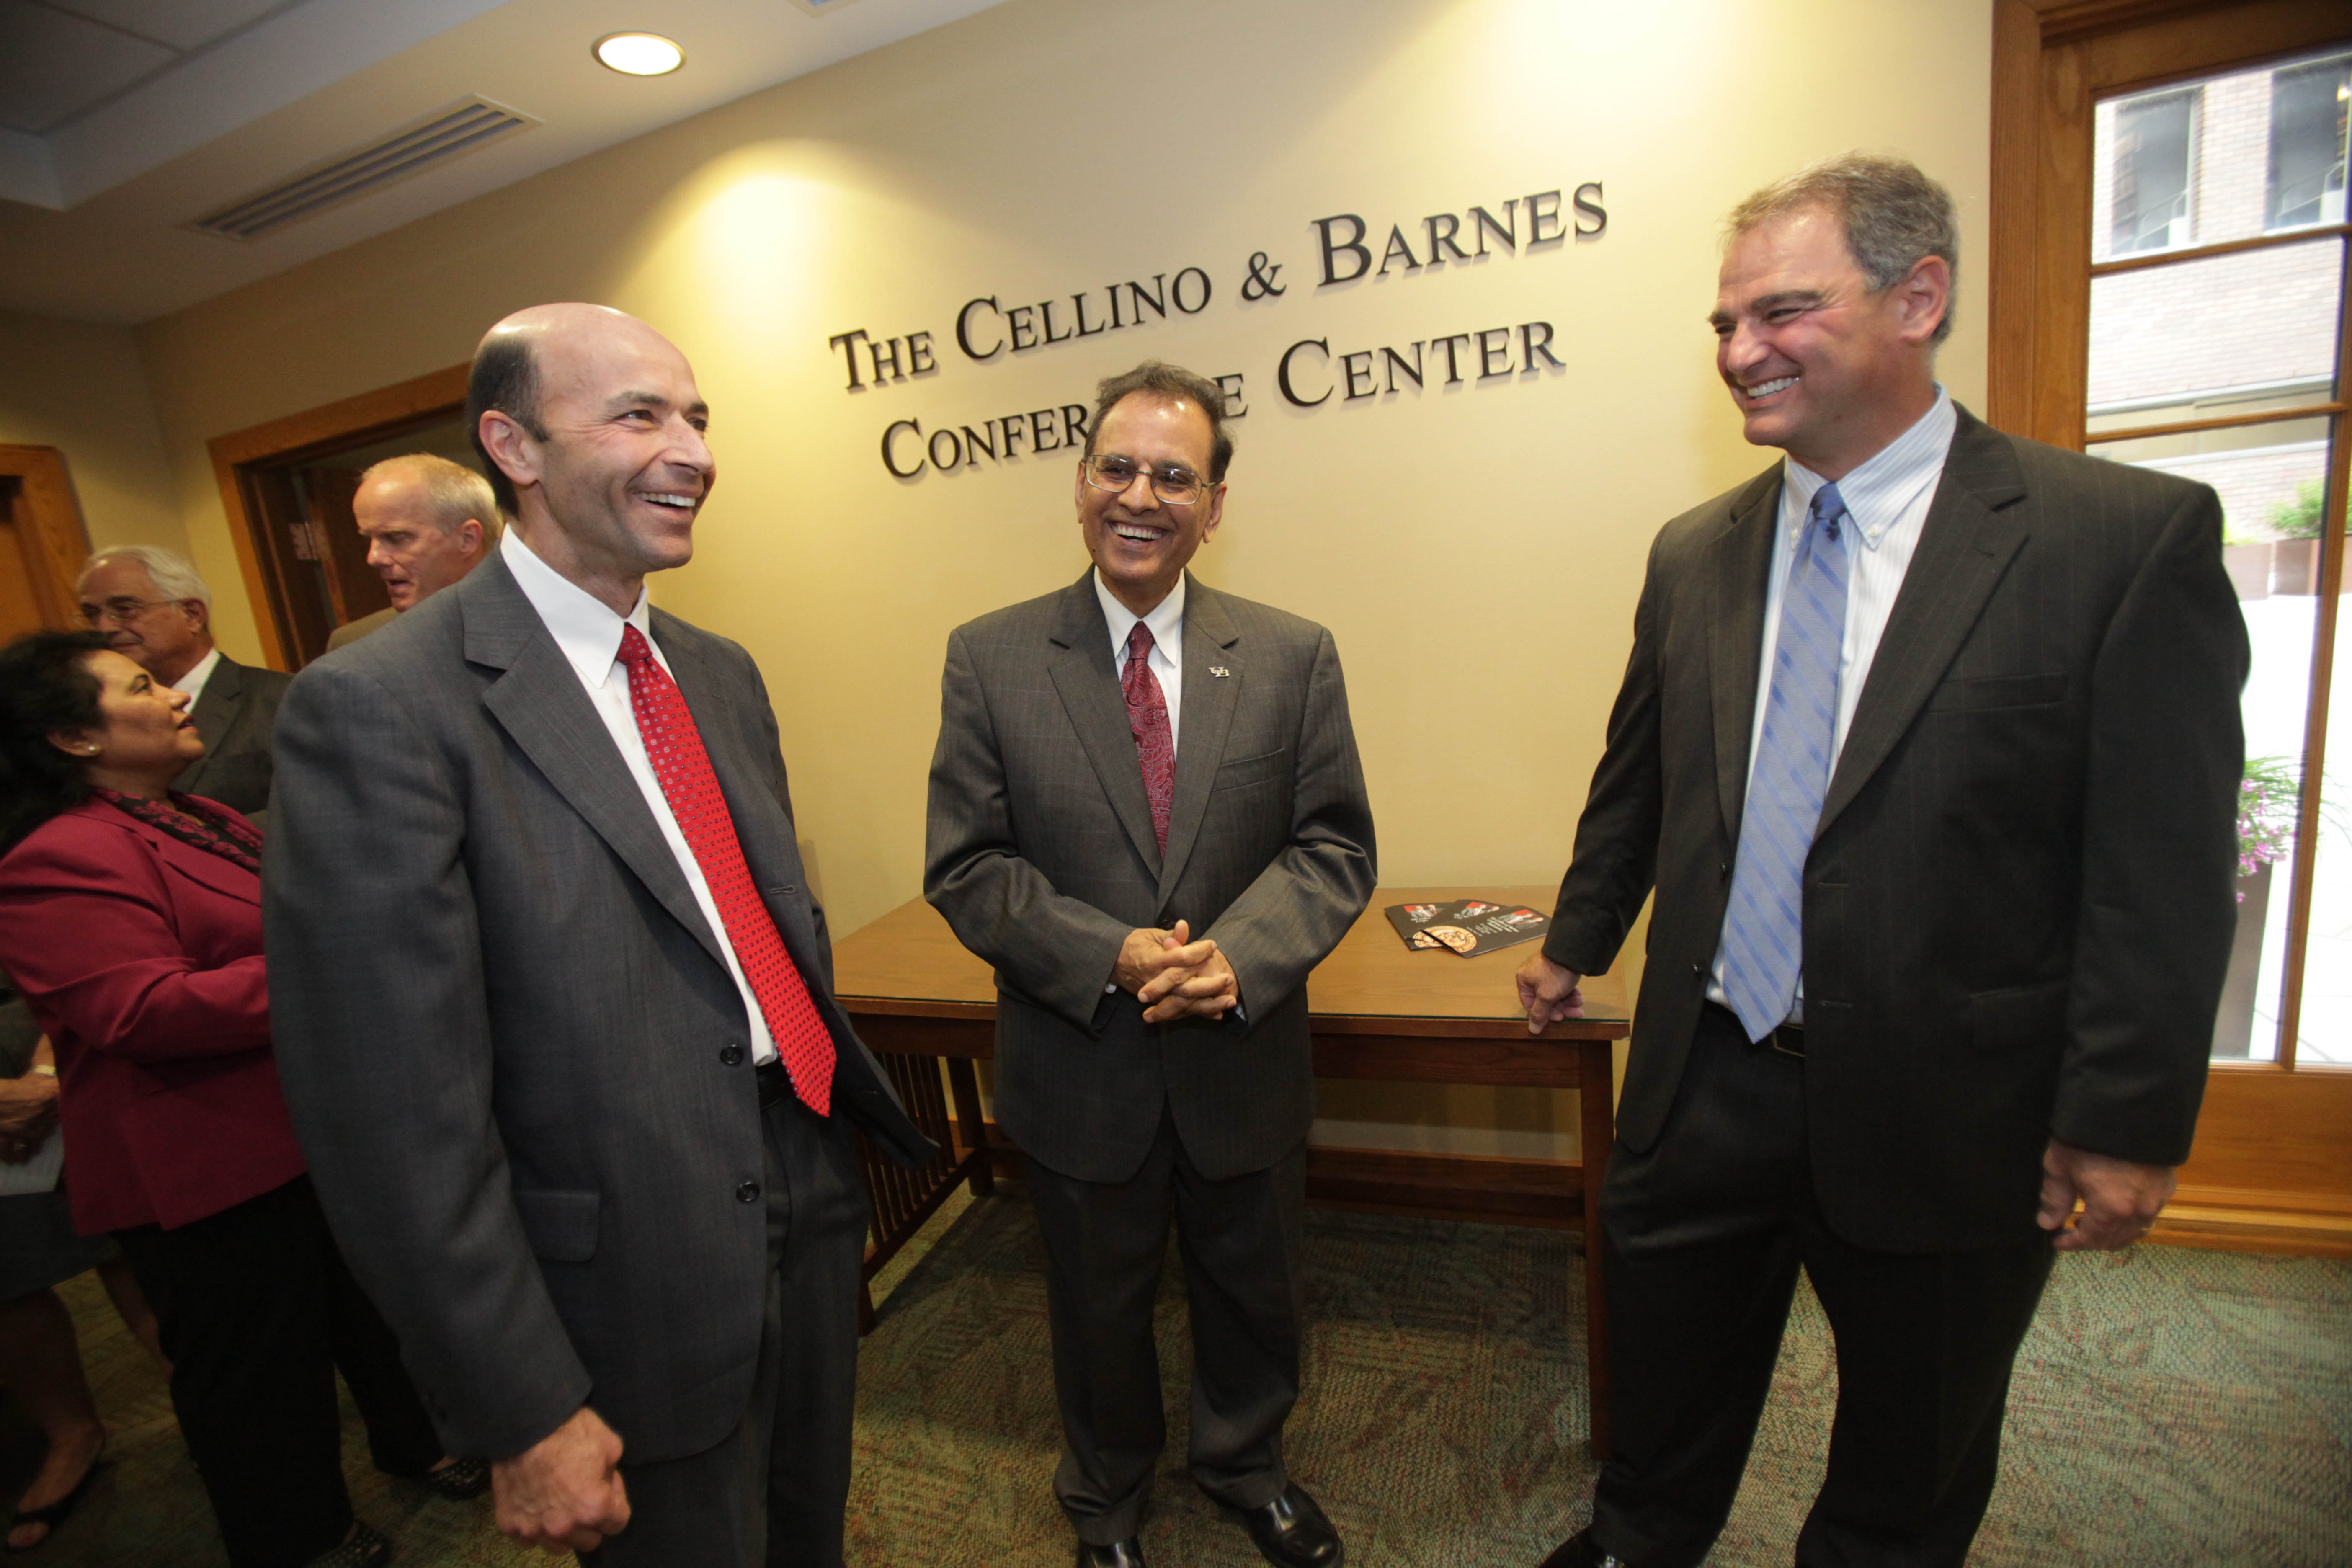 Steve Barnes and Ross Cellino Jr. attend the unveiling of the Cellino and Barnes Conference Center at UB Law School in 2011. (Sharon Cantillon/News file photo)